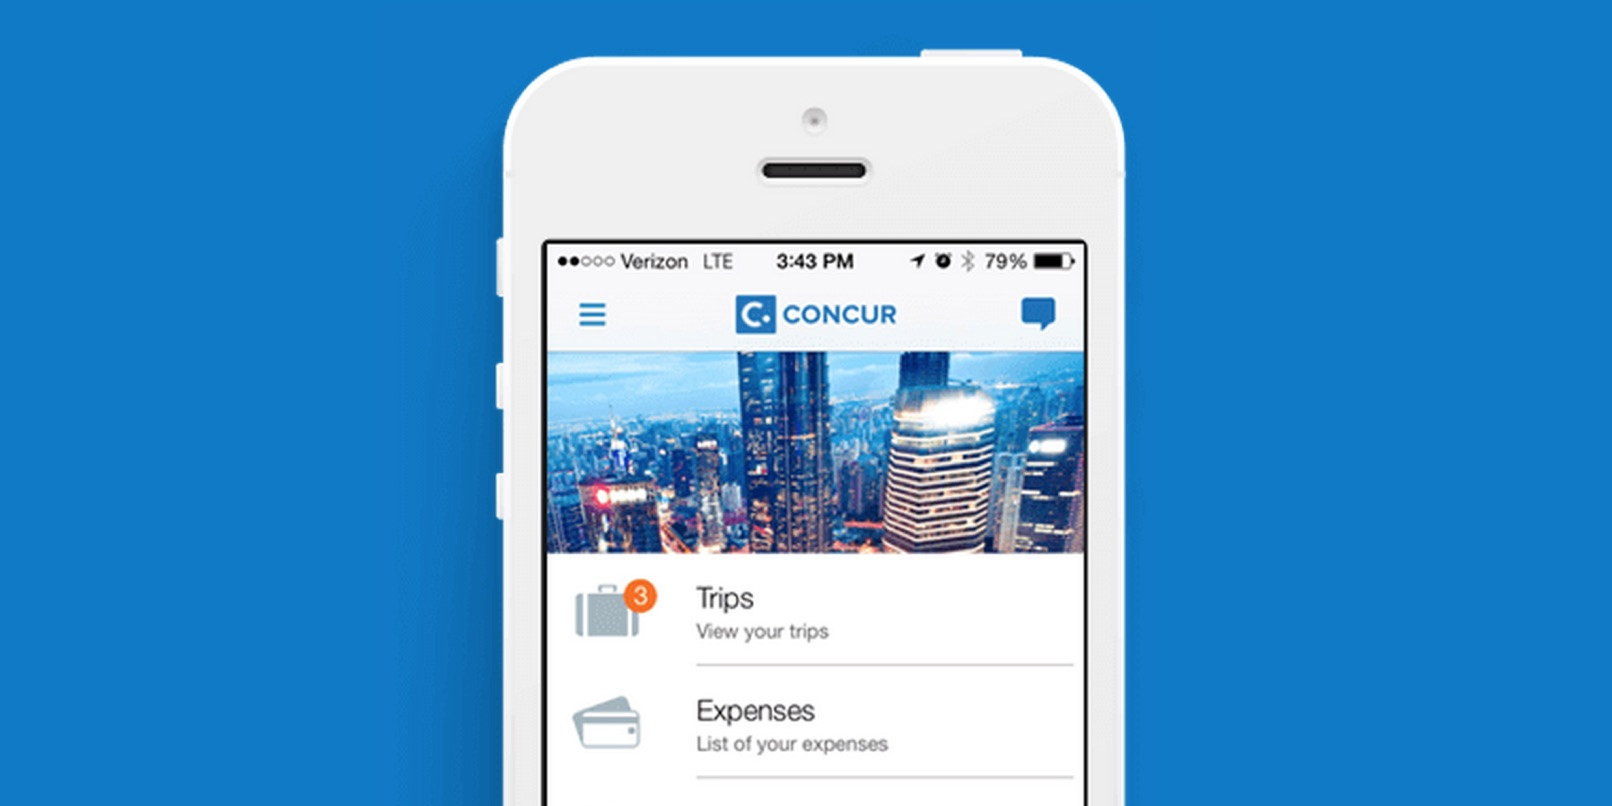 Concur integrates HotelTonight and Lyft for business trips with less hassle